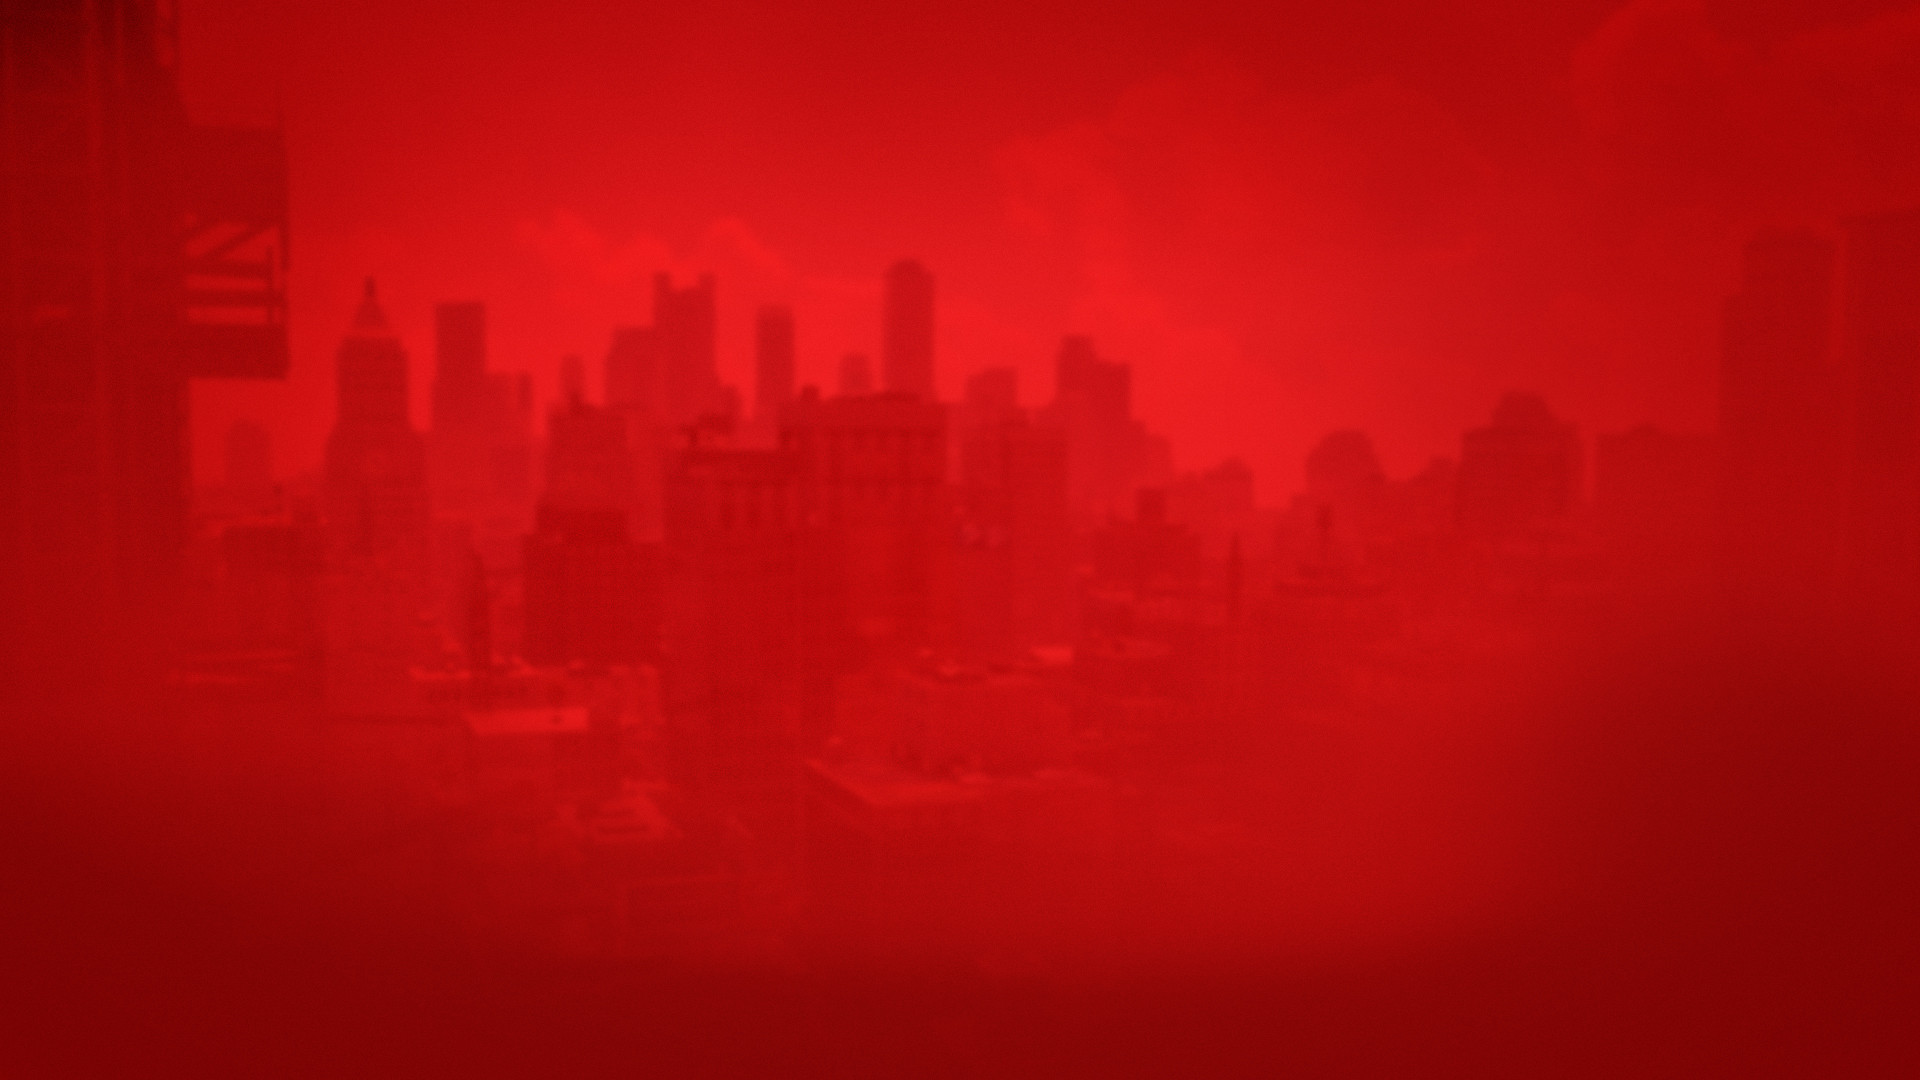 Marvel's Spider-Man city background